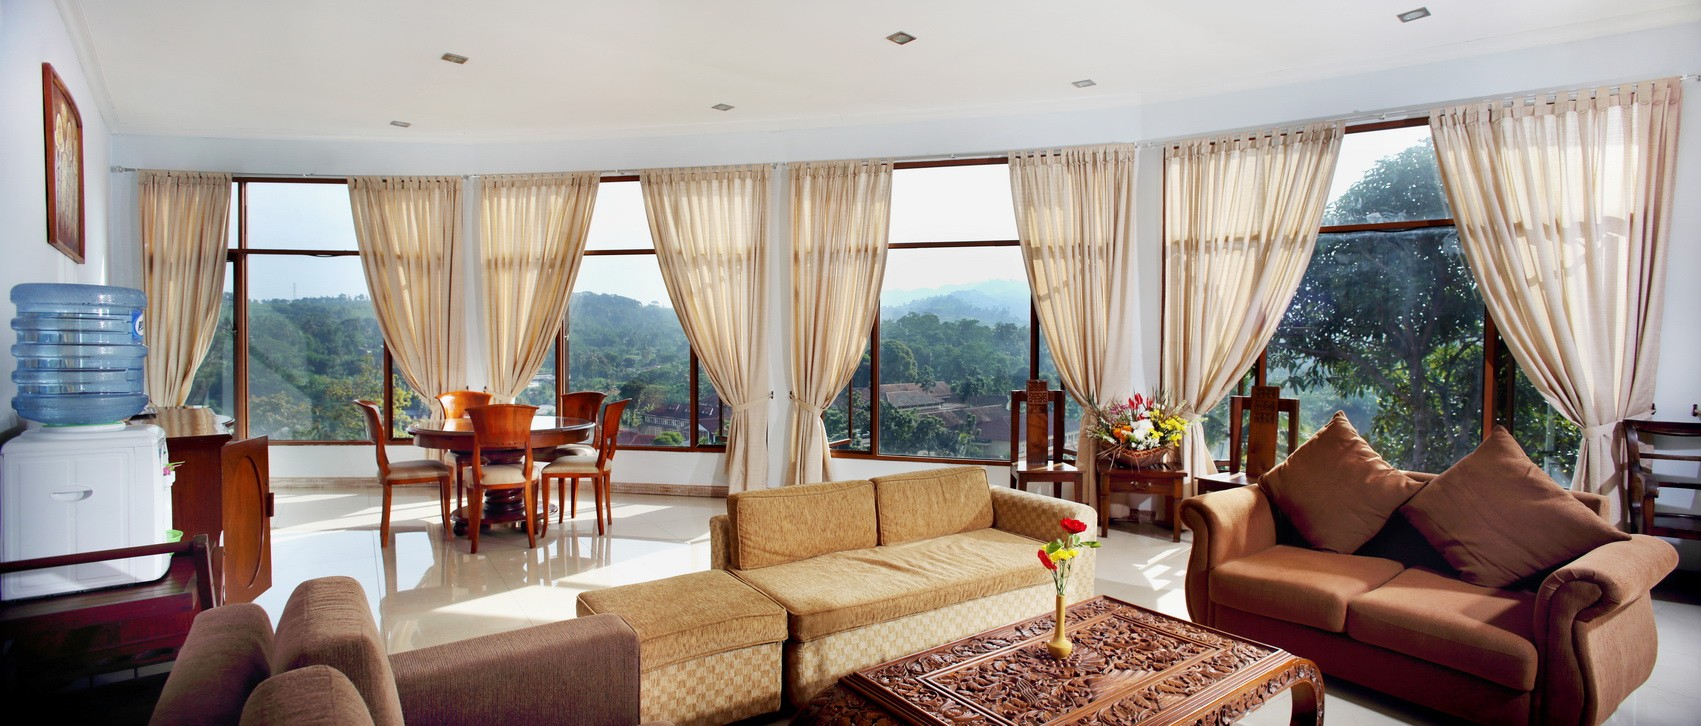 Athalia Resort Hotel Reservation Voucher Puncak Yasmin And Conference